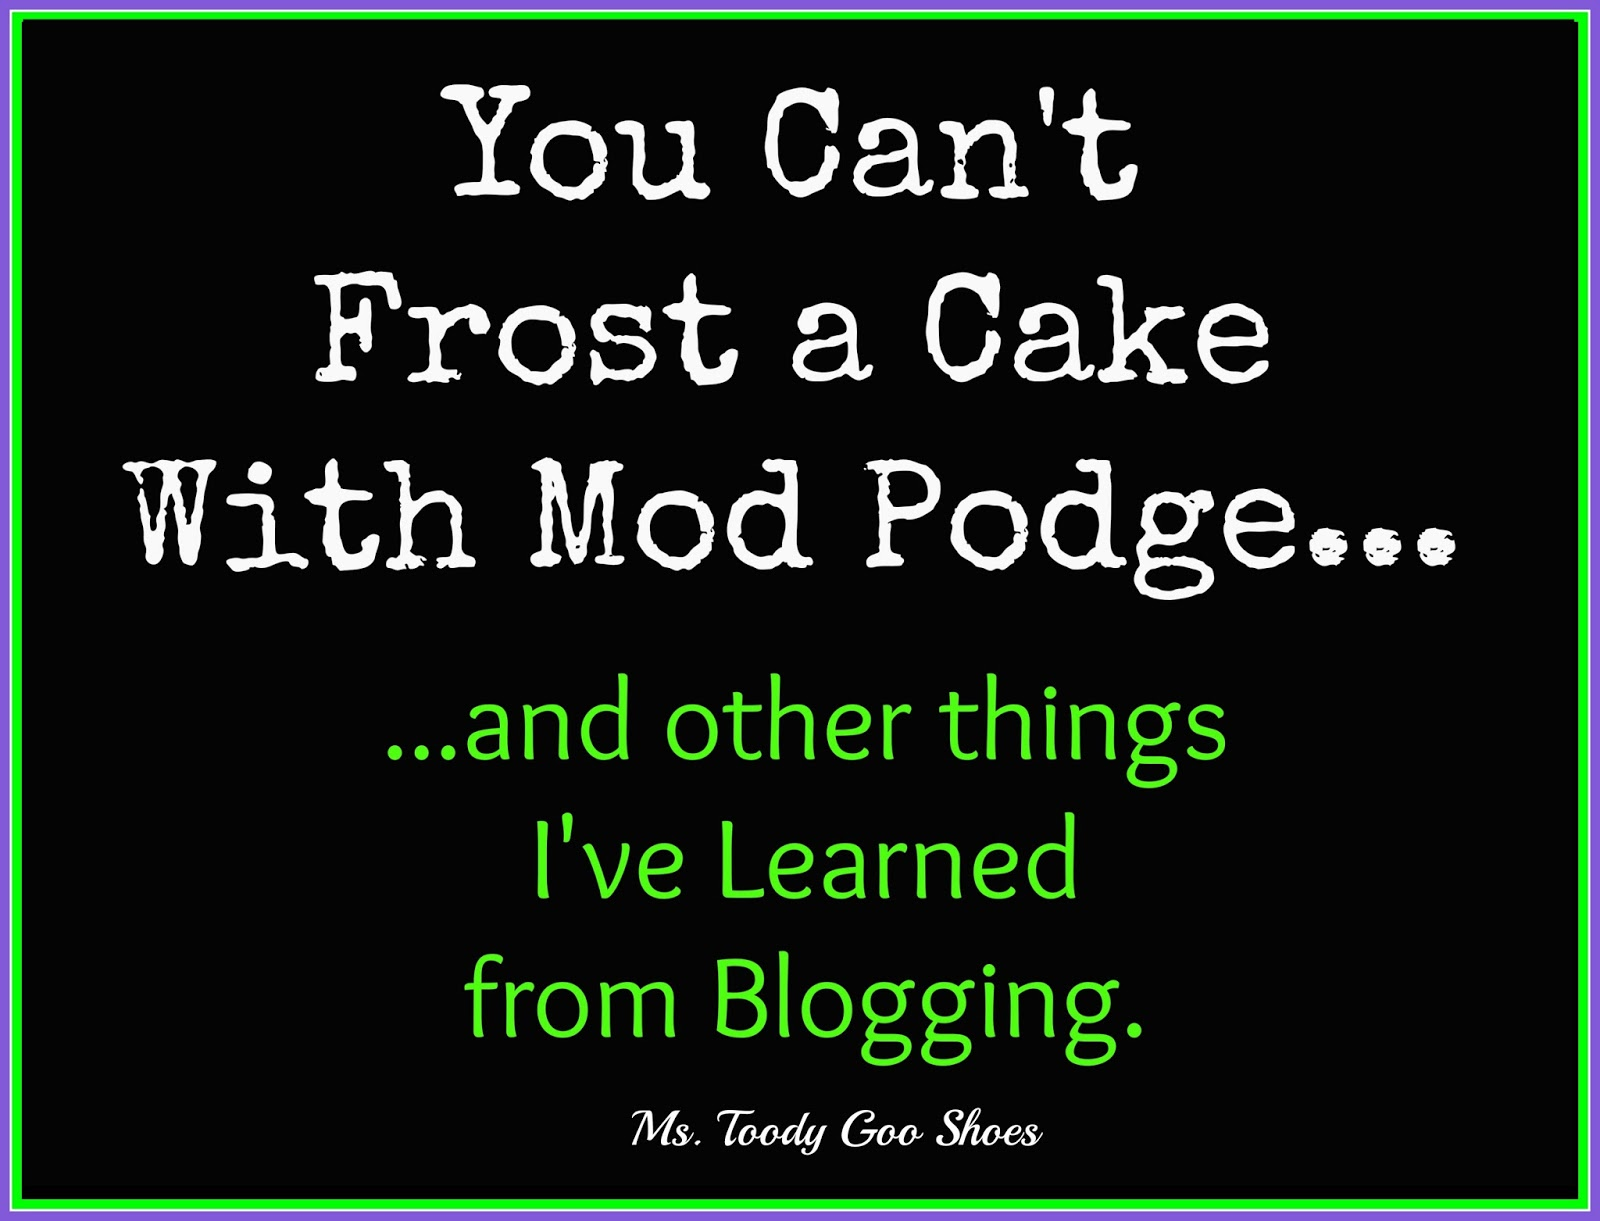 ake With Mod Podge: Things I've Learned From Blogging by Ms. Toody Goo Shoes